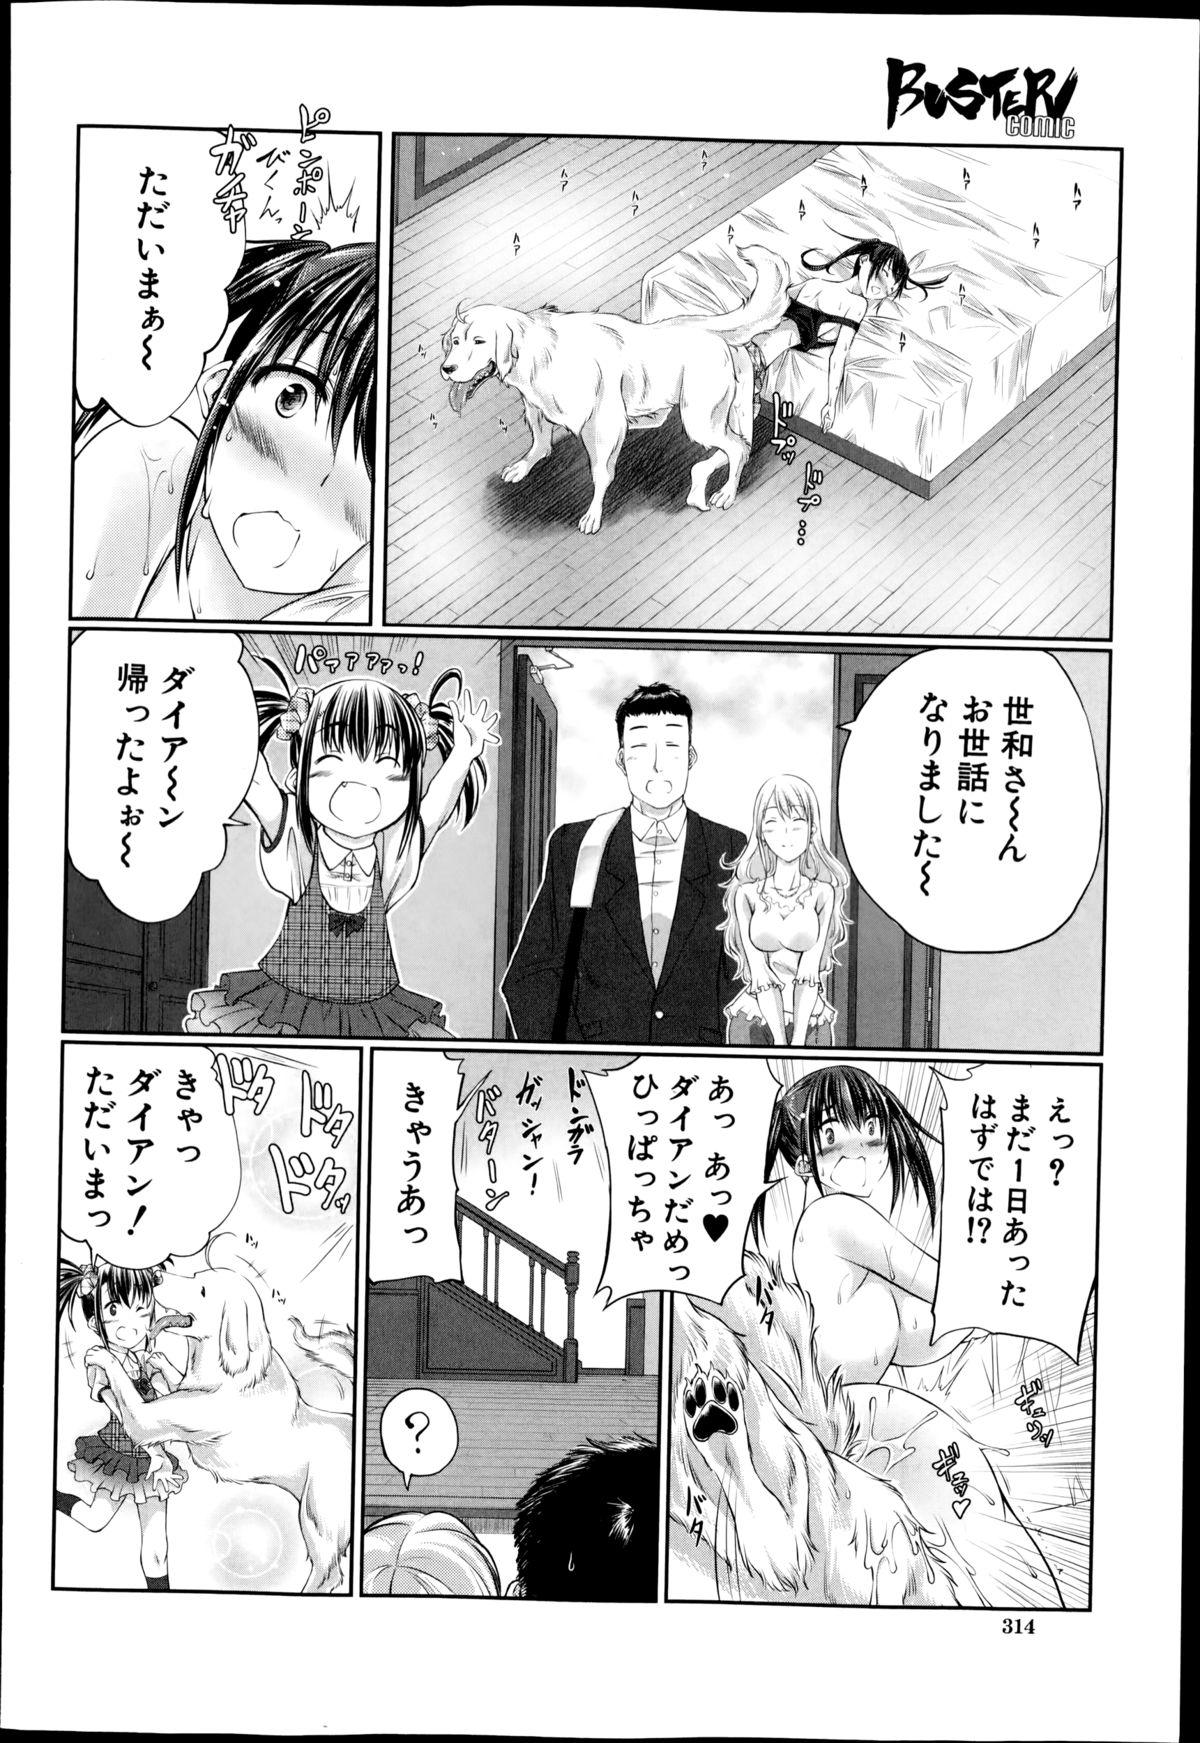 BUSTER COMIC 2014-09 313